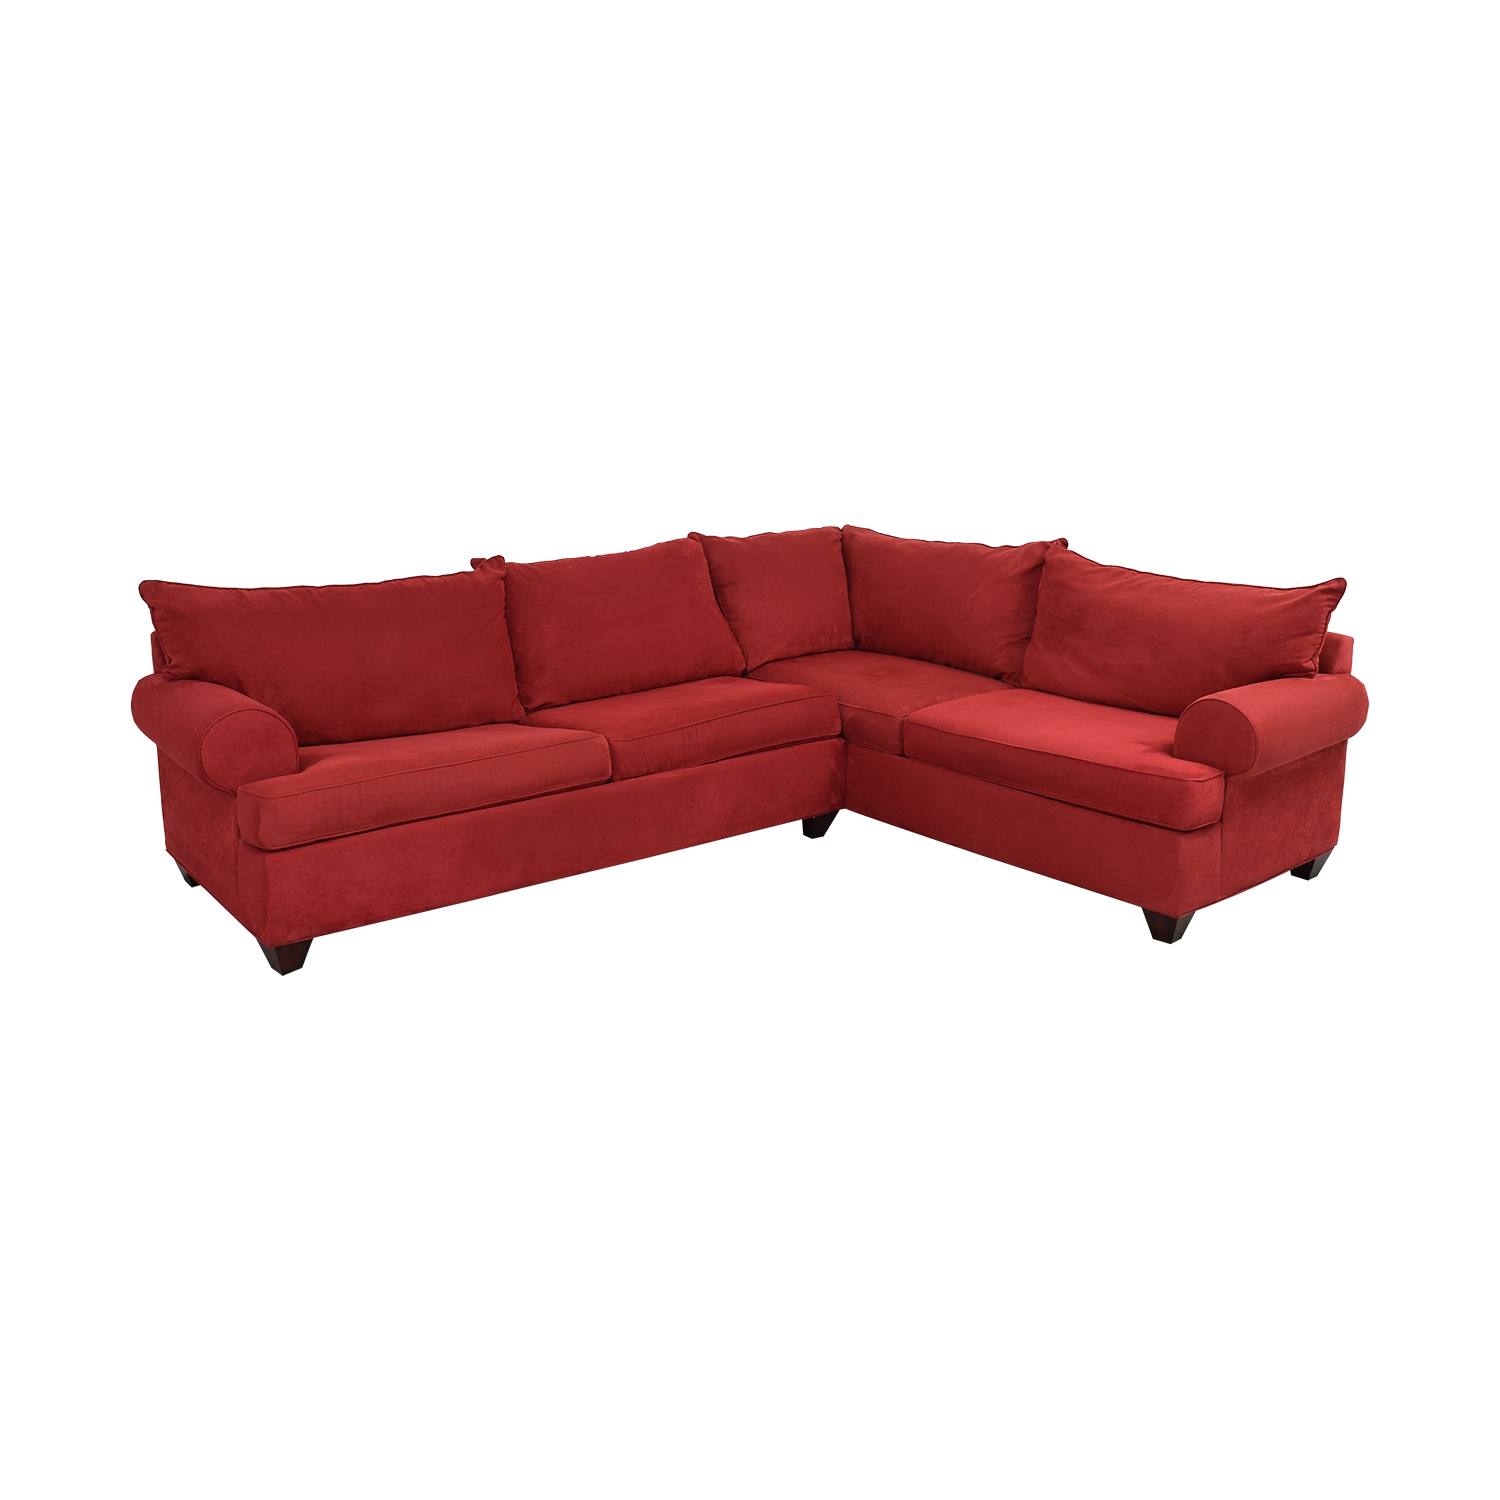 Raymour & Flanigan Raymour & Flanigan Sleeper Sectional Sofa Sectionals